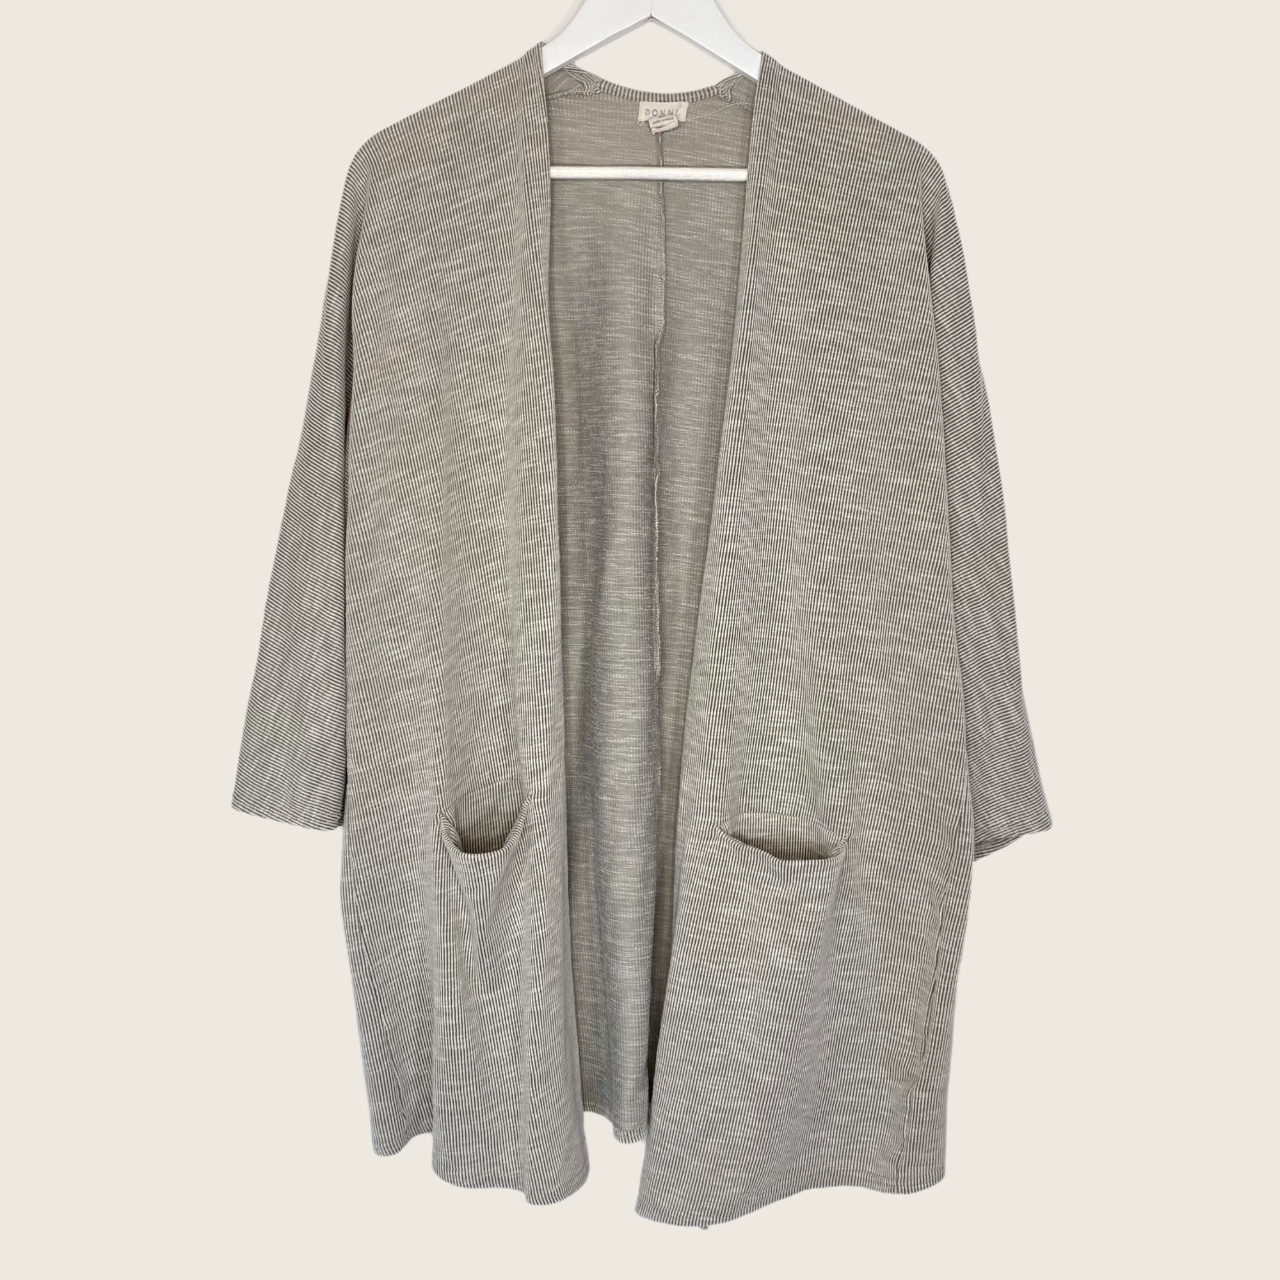 Product Image 1 - DONNI. Open Front Jersey Knit